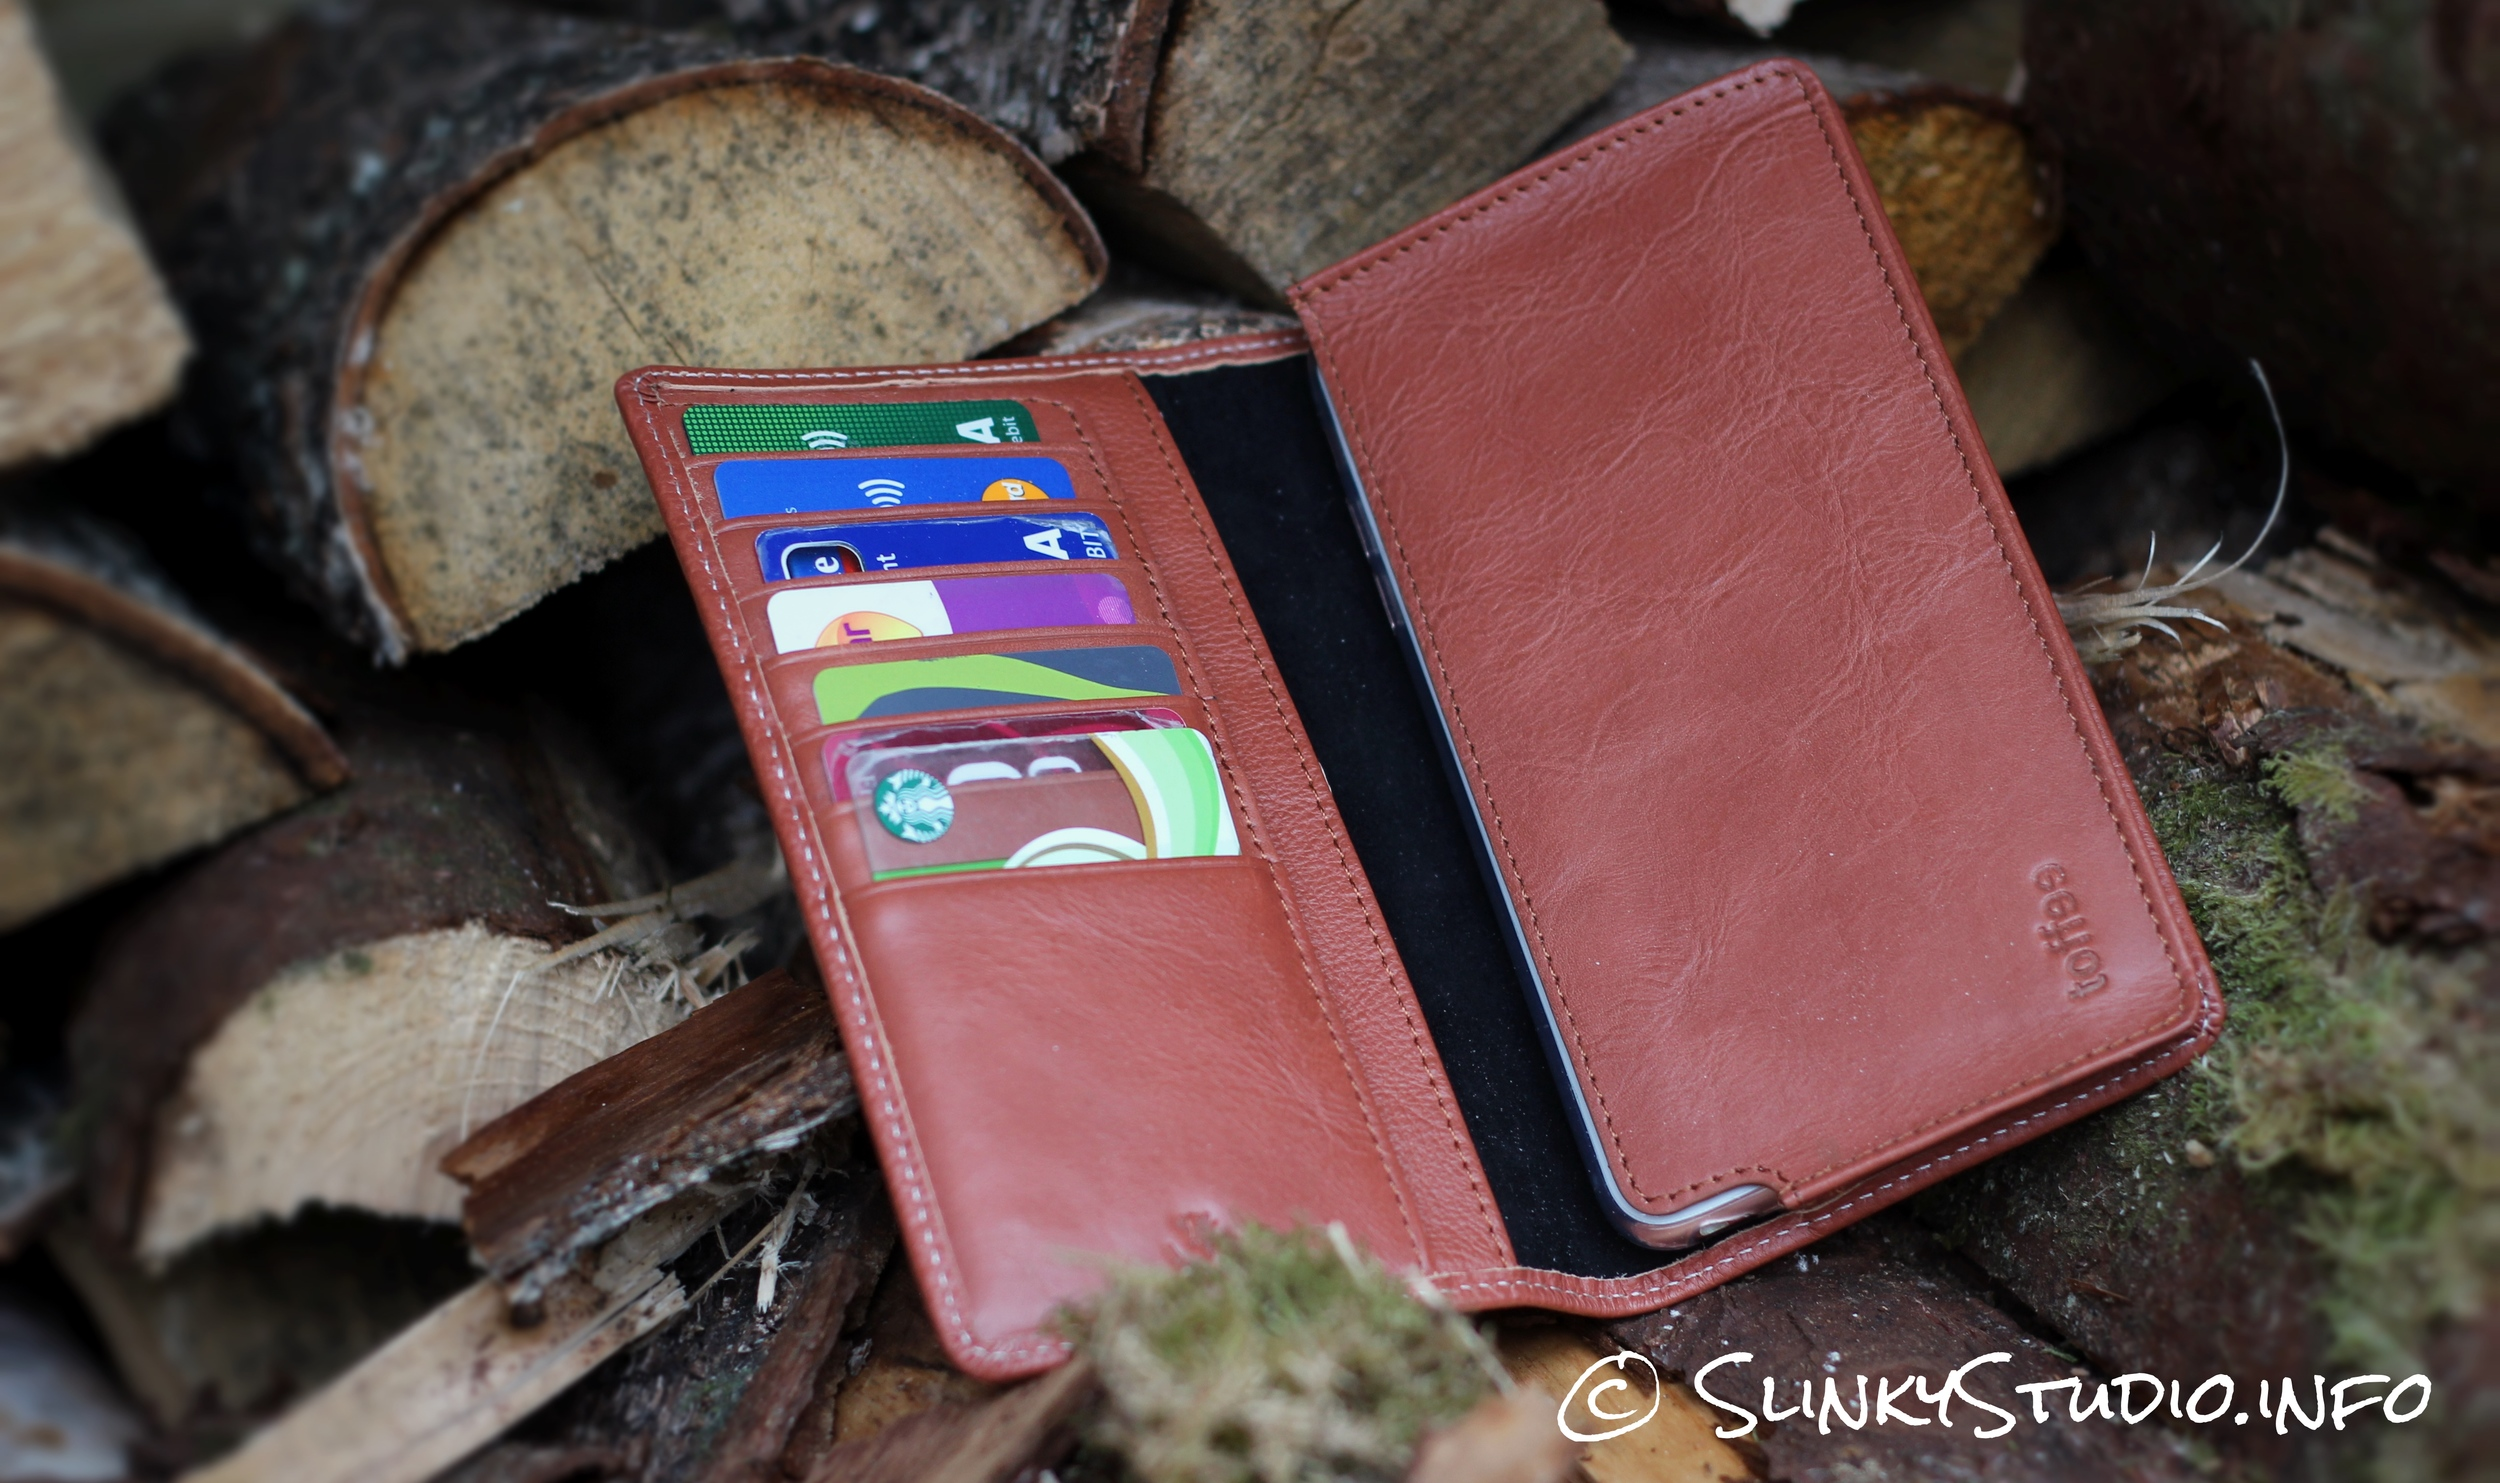 Toffee Sleeve Wallet Case for iPhone 6/6s Plus on logs